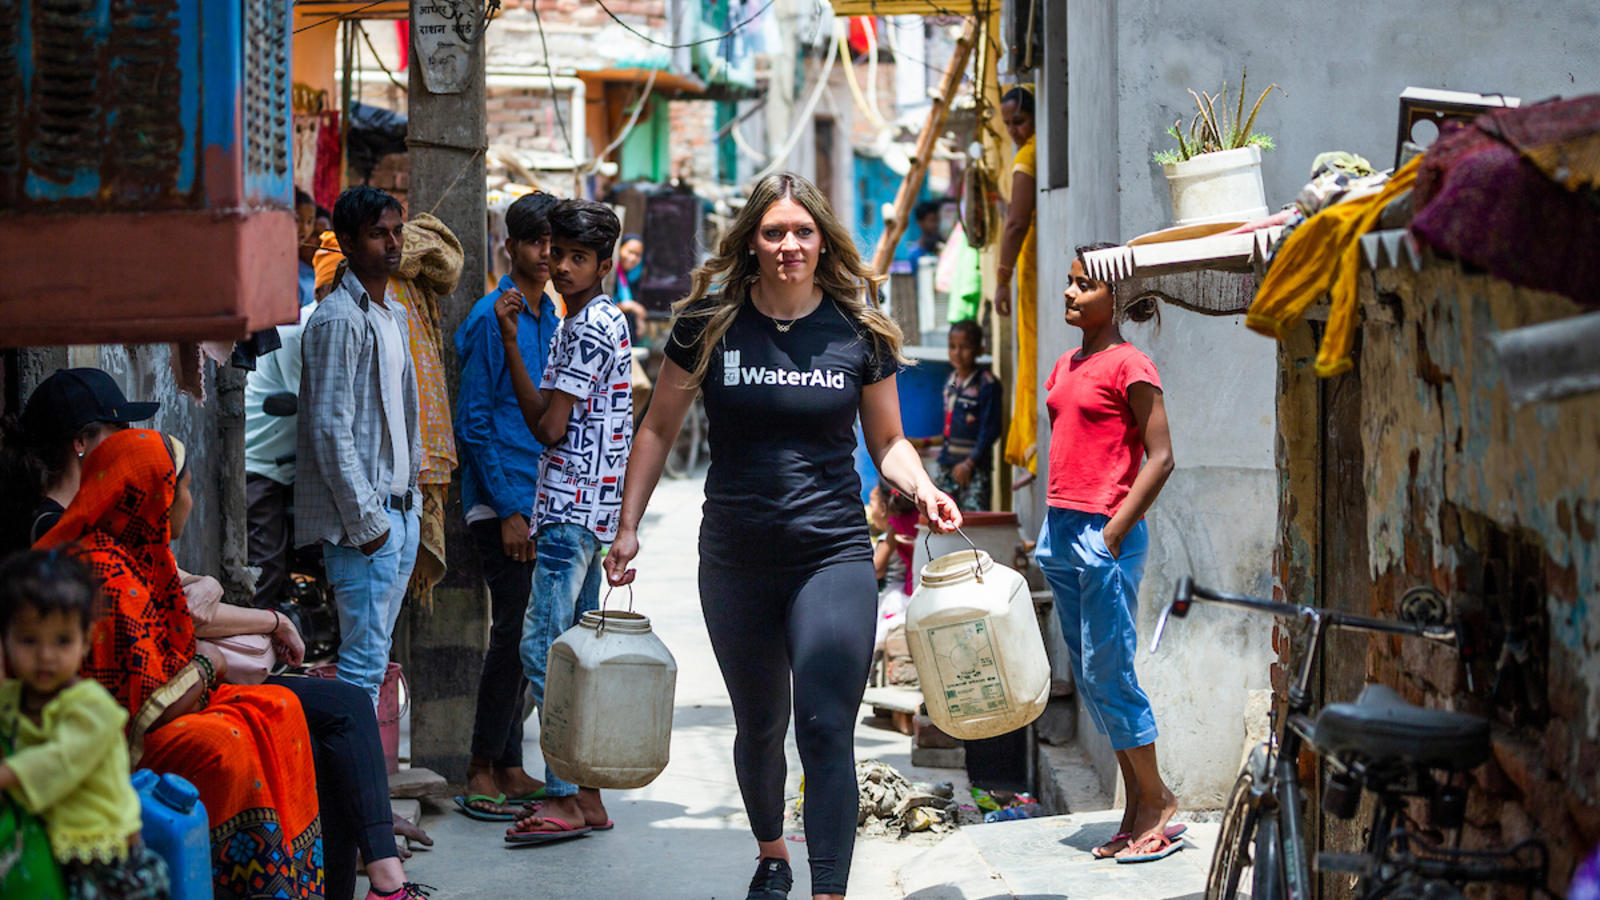 Natalie visiting an urban slum in New Delhi that has limited access to water.